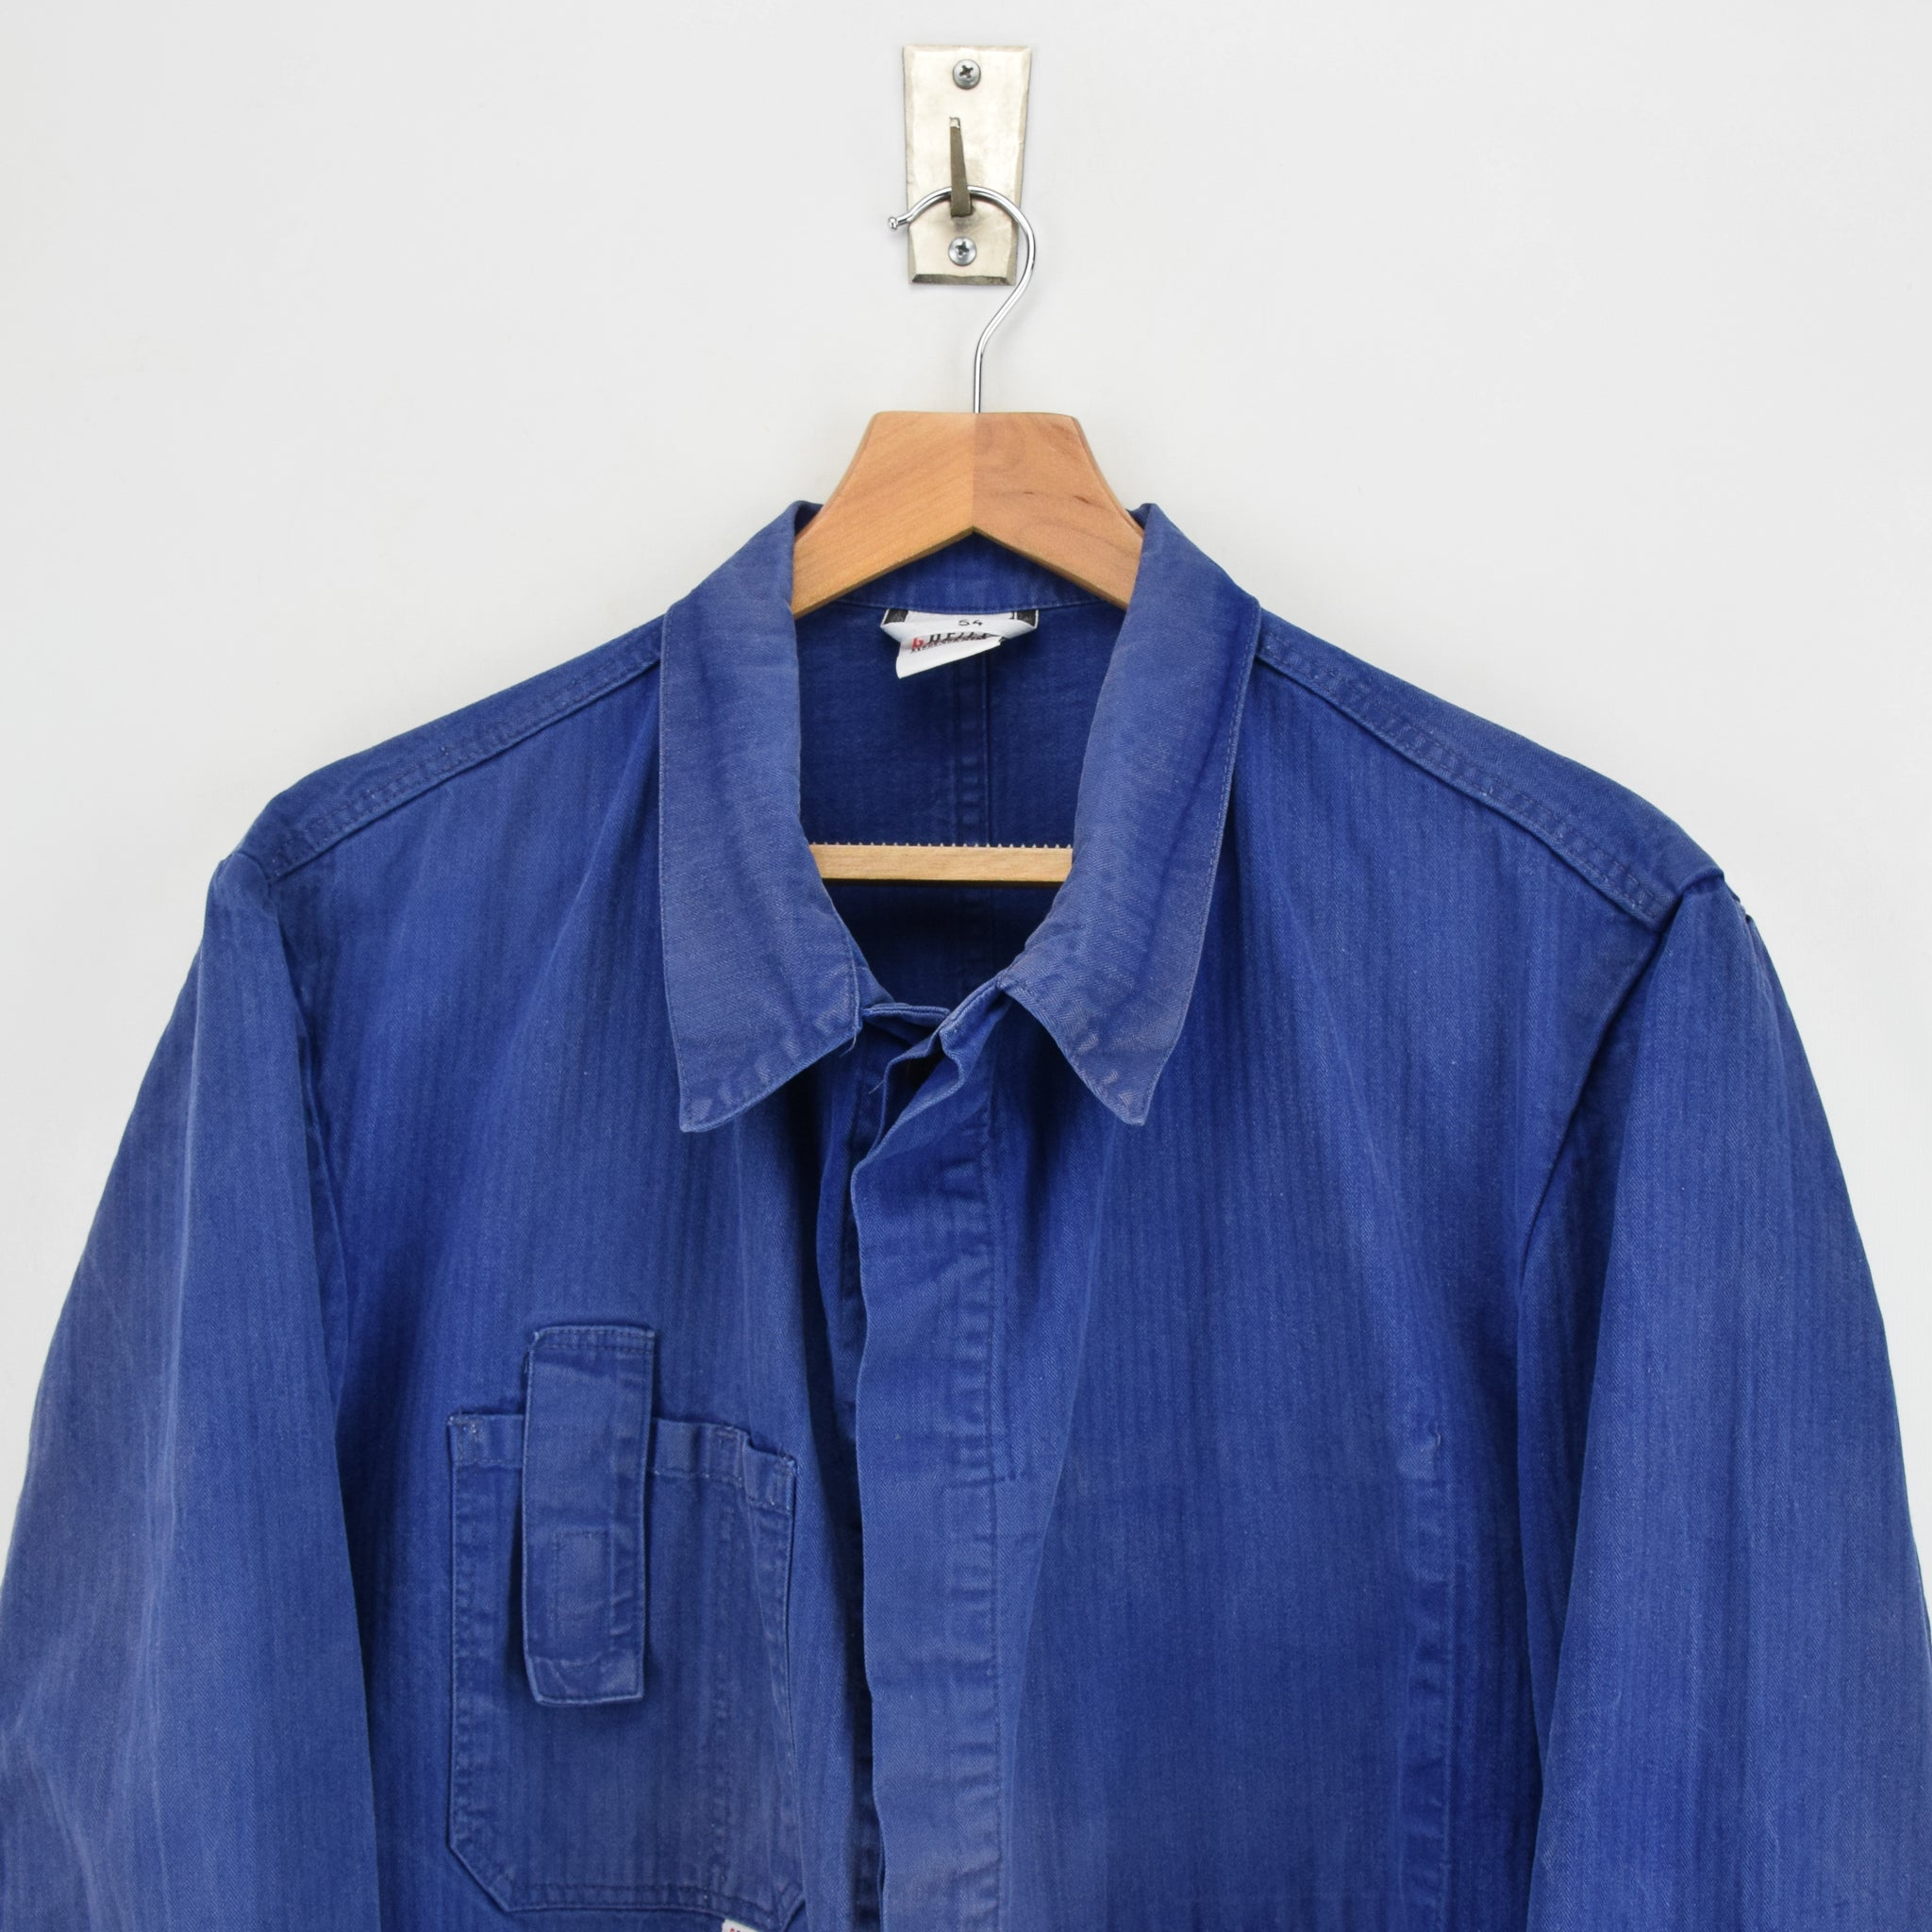 Vintage Distressed Blue French Style Worker Sanforized Cotton Chore Jacket L chest